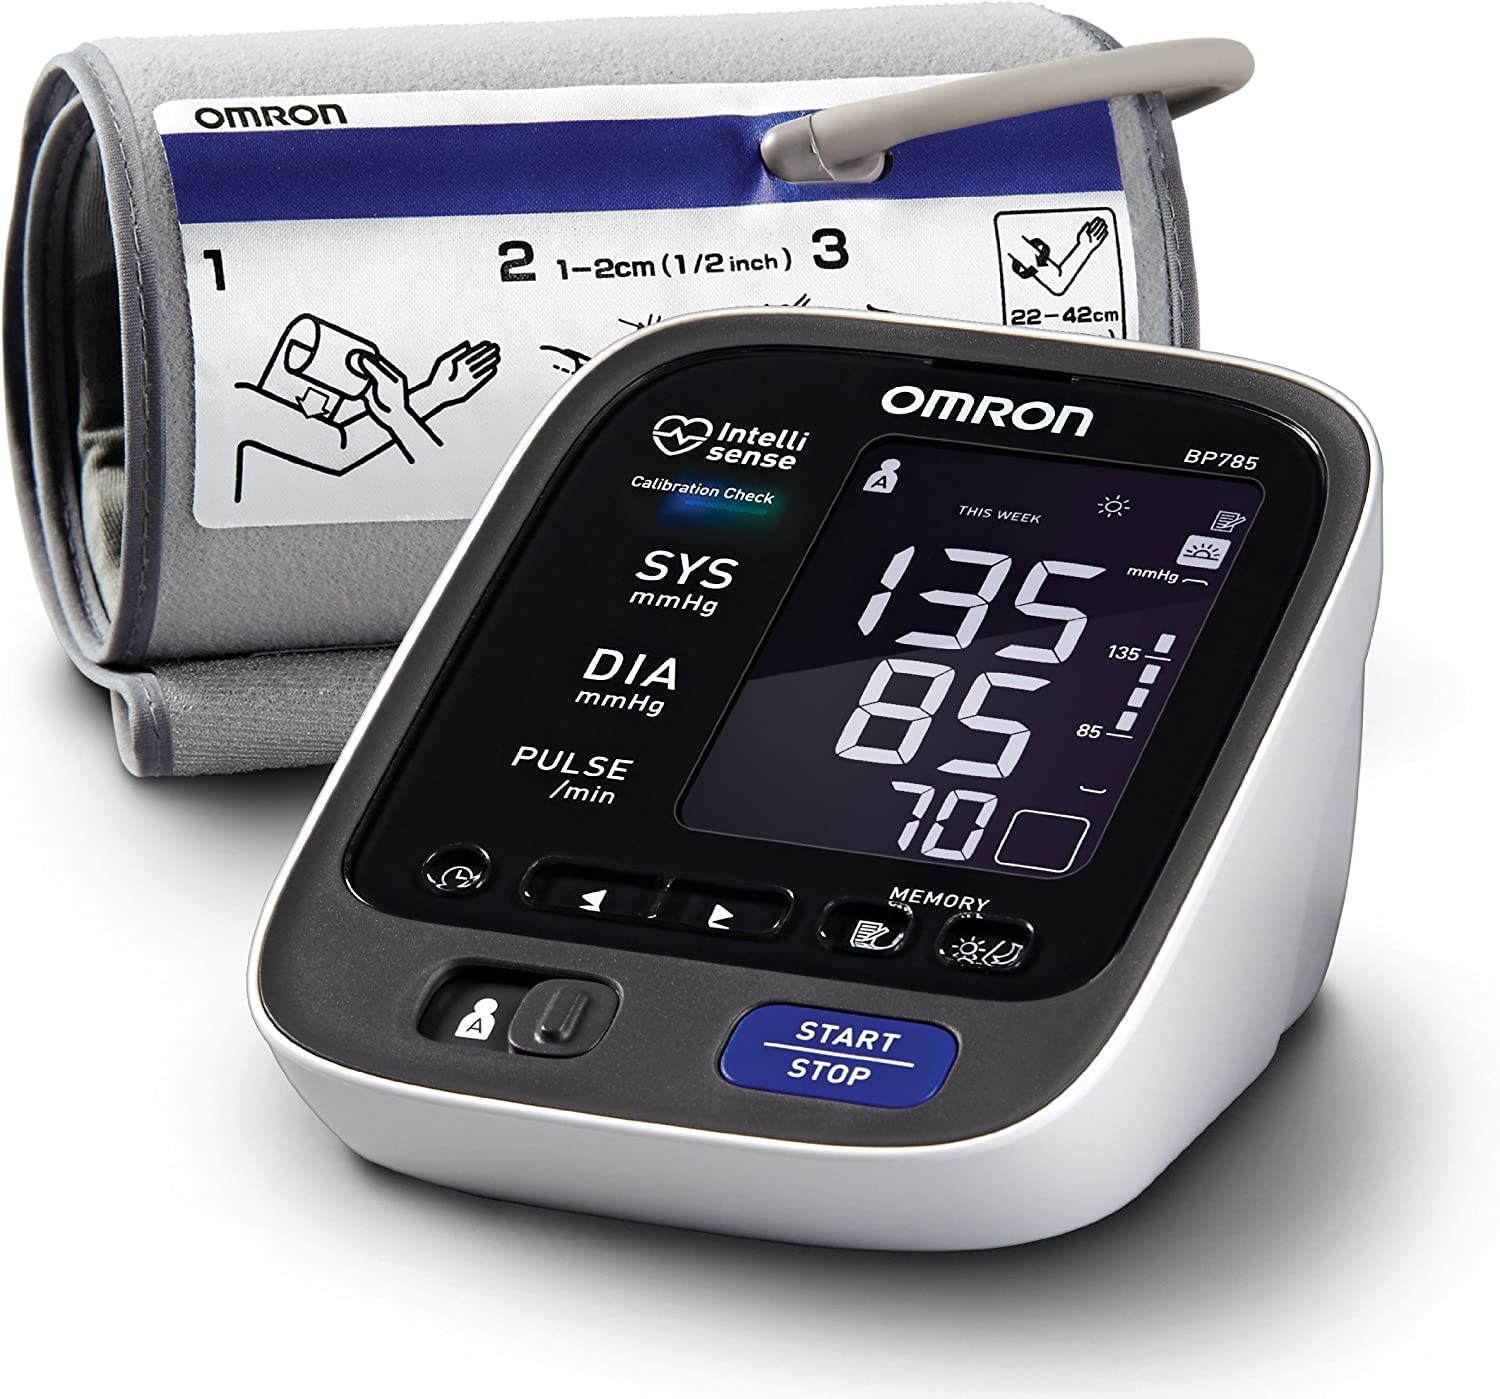 Omron BP785 10 Series Upper Arm Blood Pressure Monitor, Black white